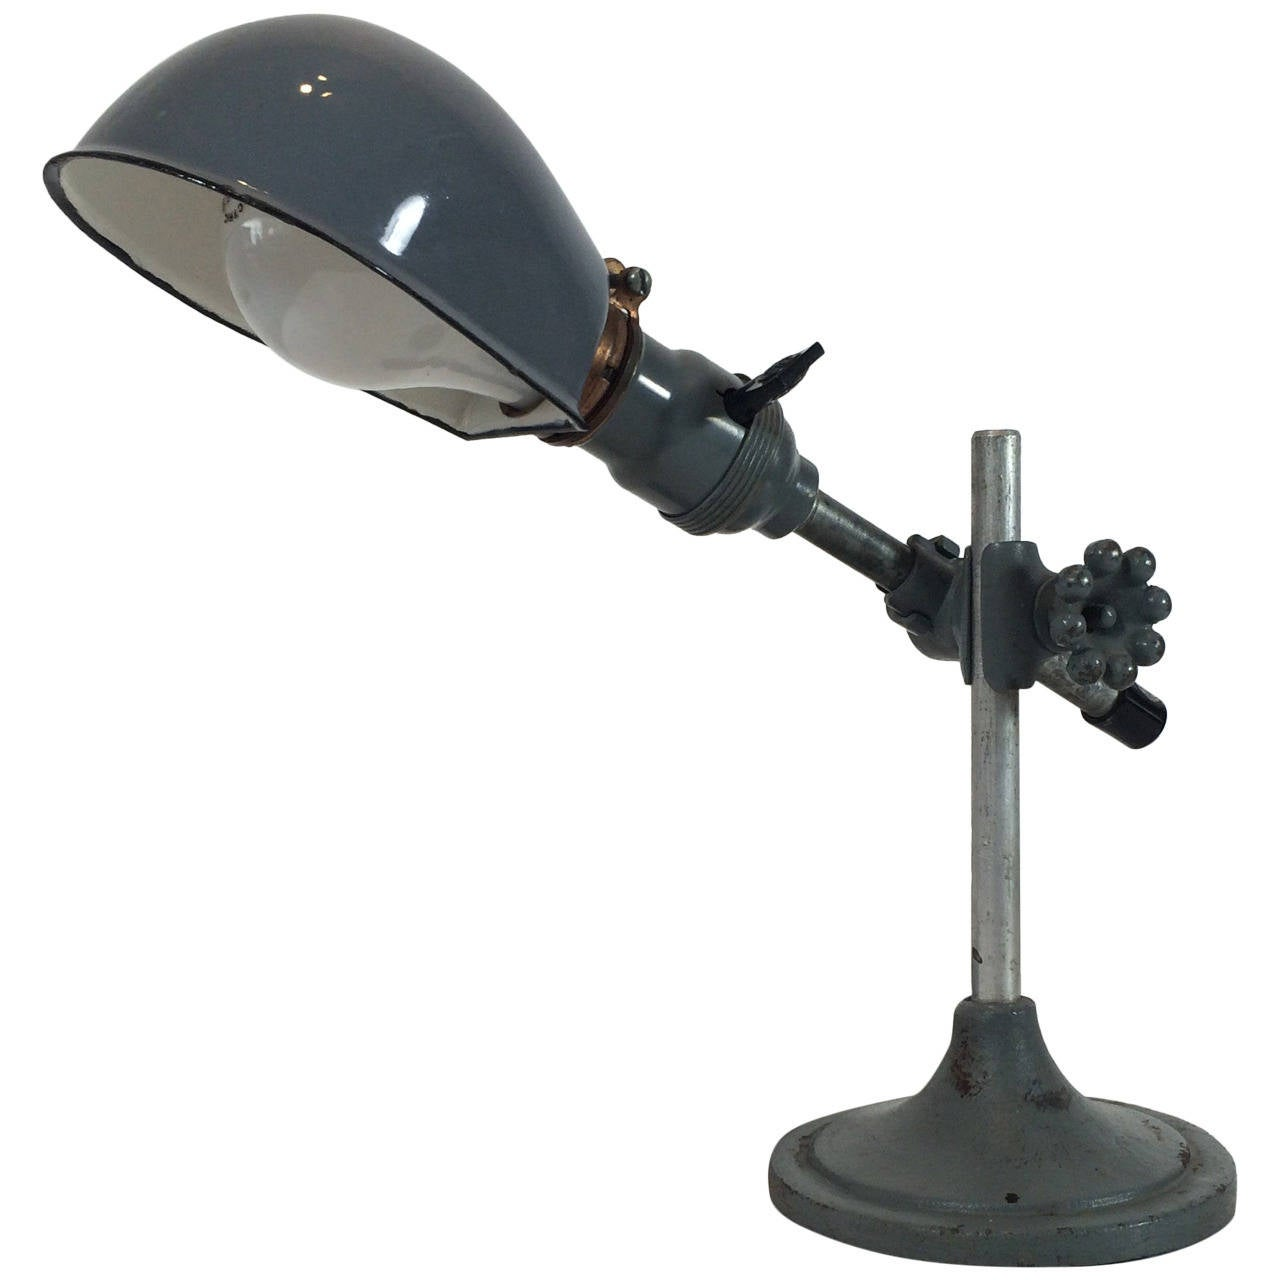 O.C. White Industrial Table Lamp In Original Finish At 1stdibs